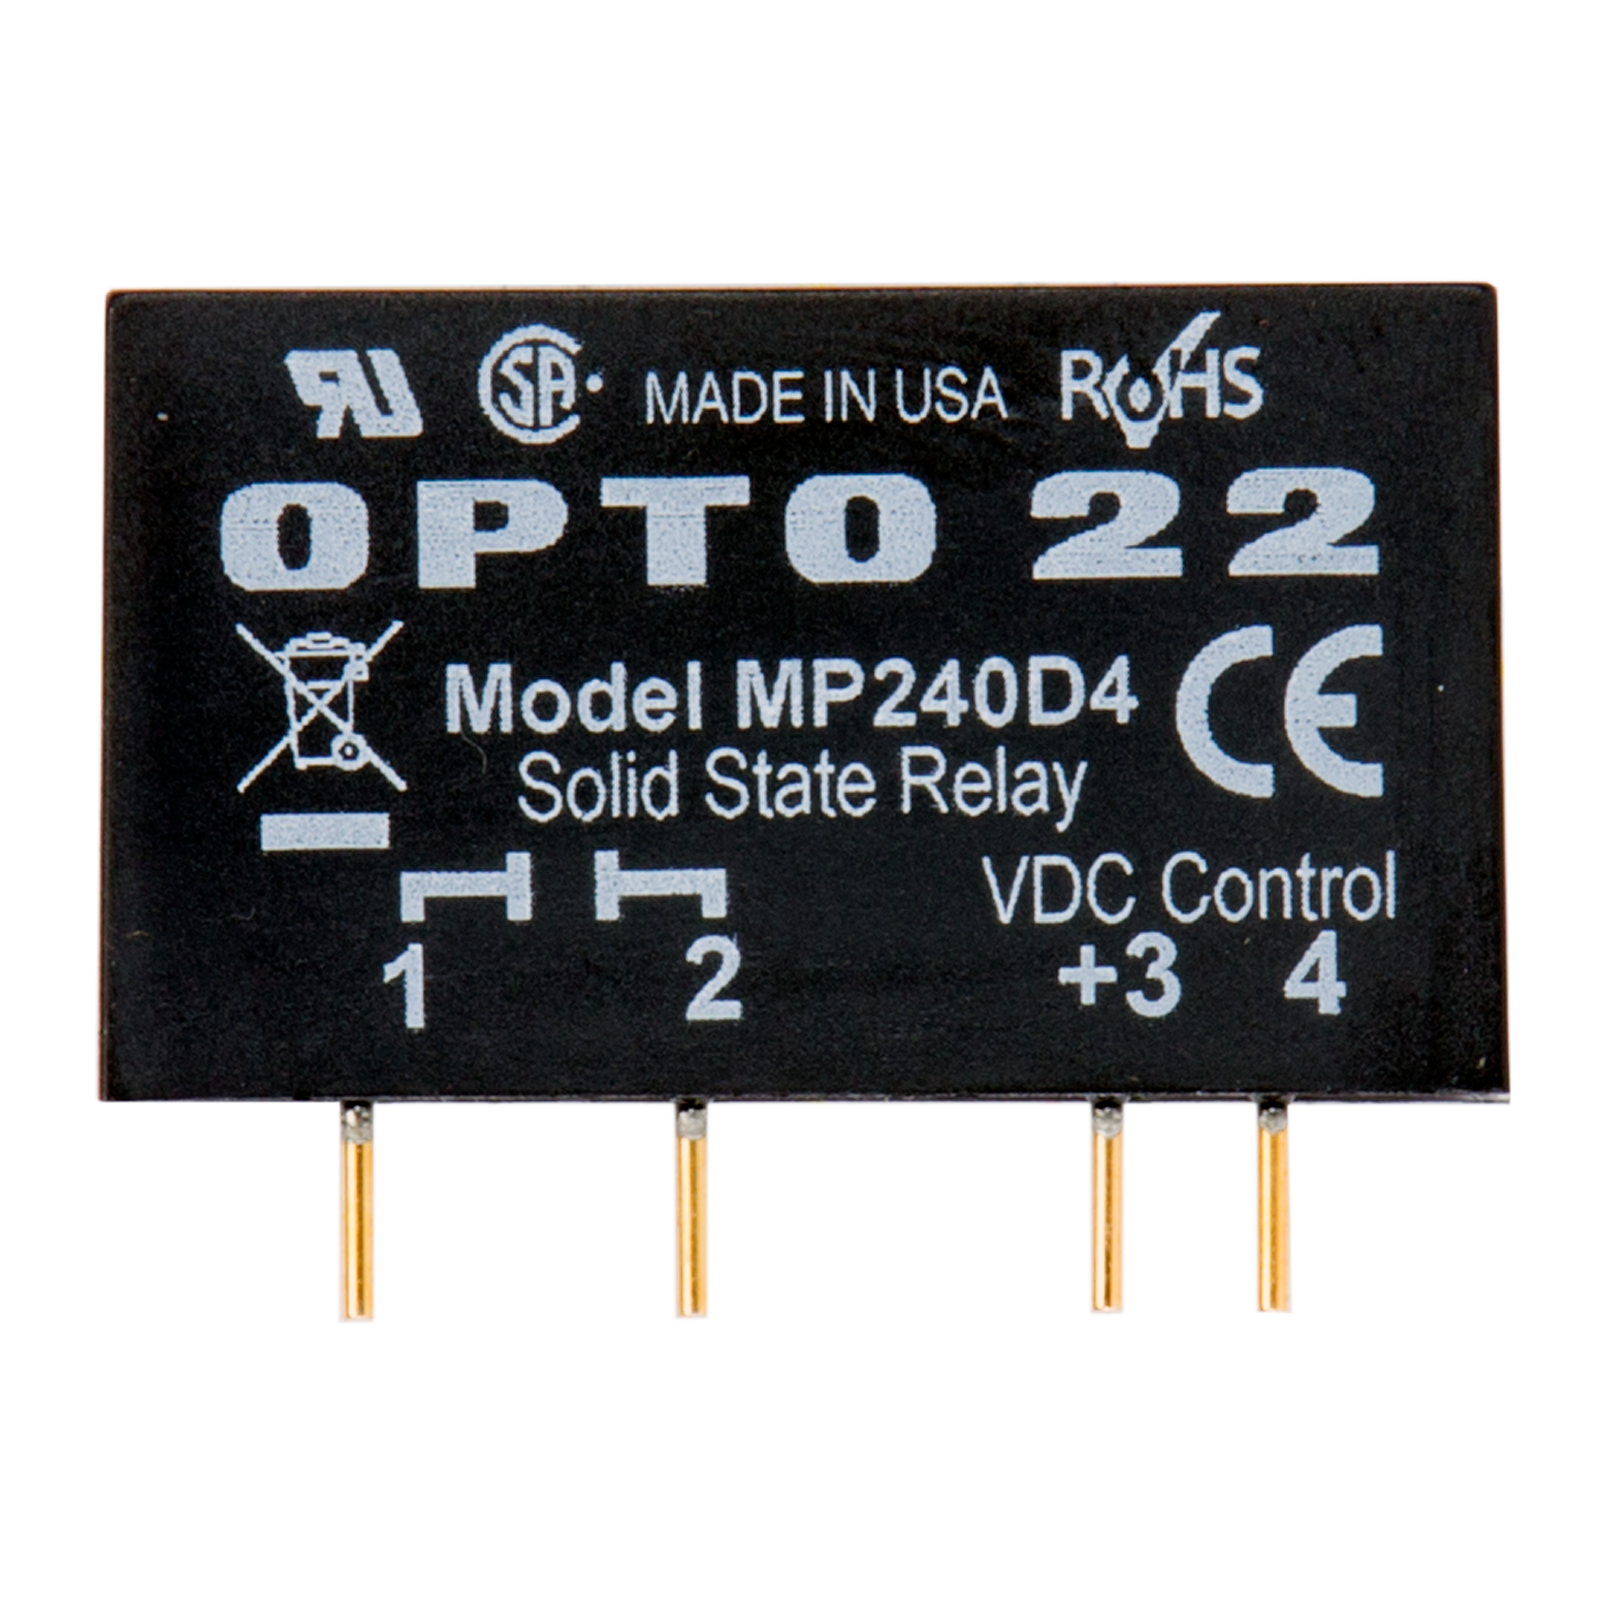 Opto22 Mp240d4 Mp Model 240 Vac 4 Amp Dc Control Solid State Relay Working Next